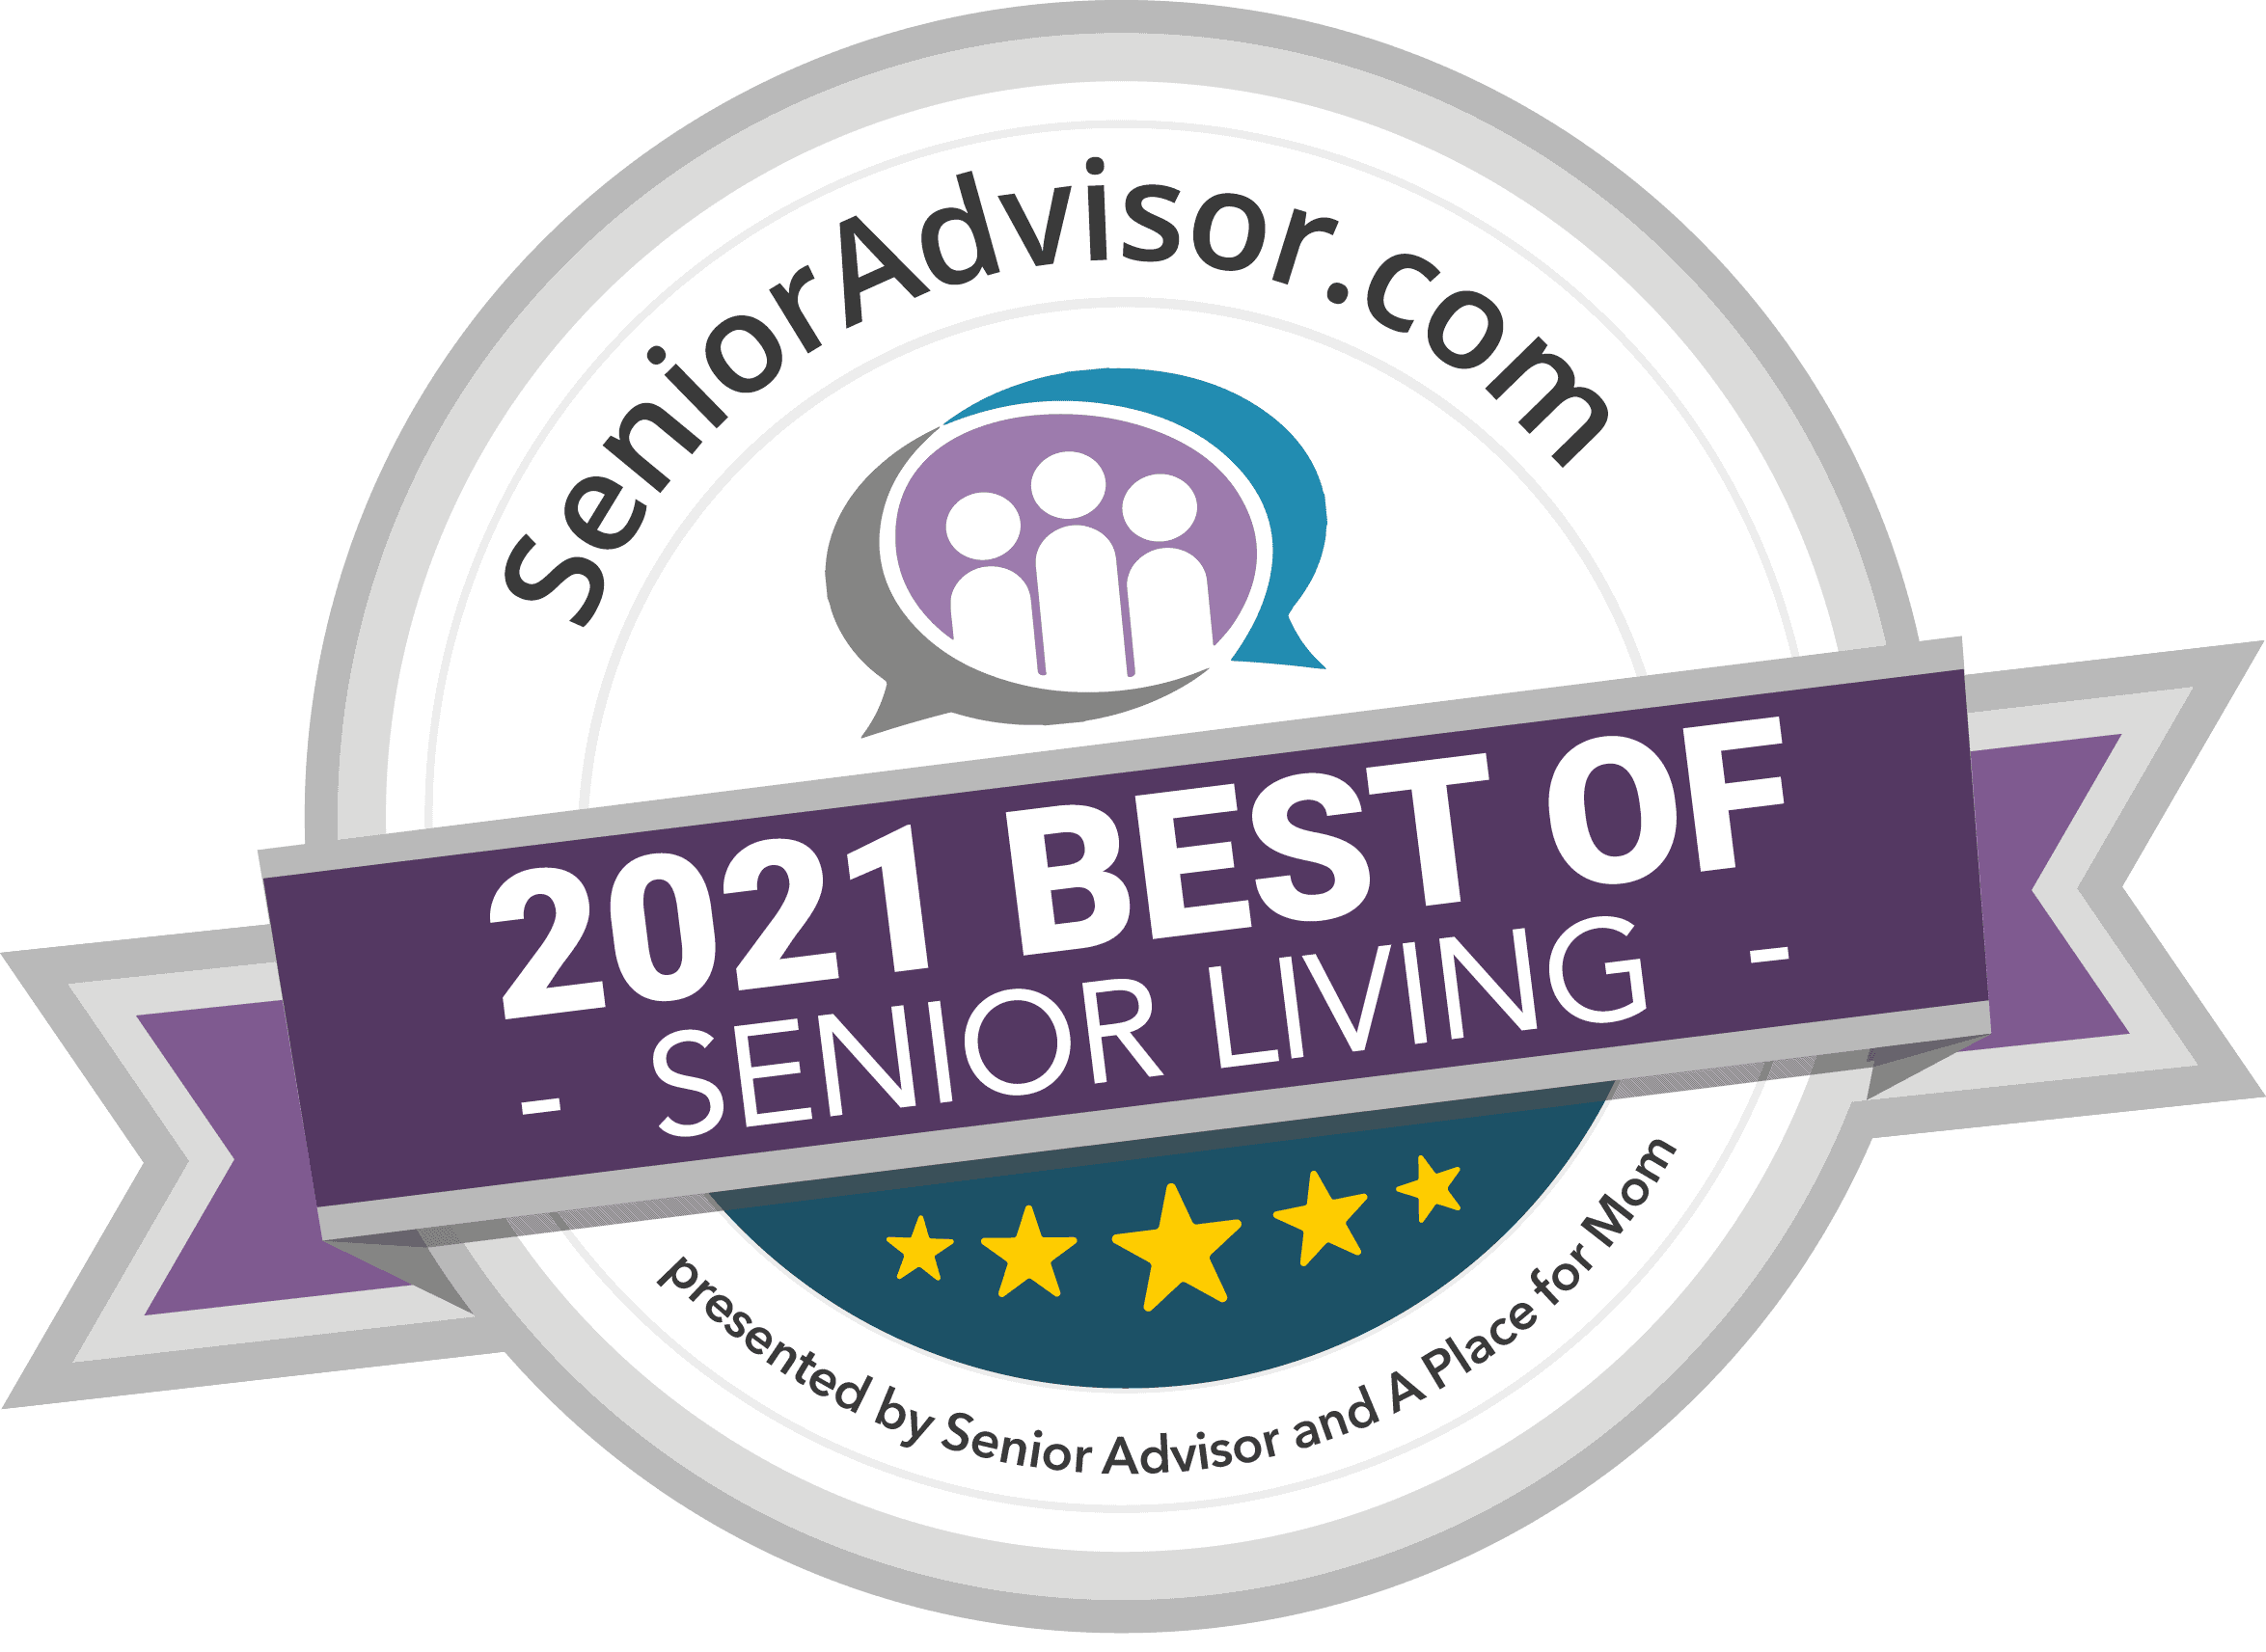 2021-senior-living-badge